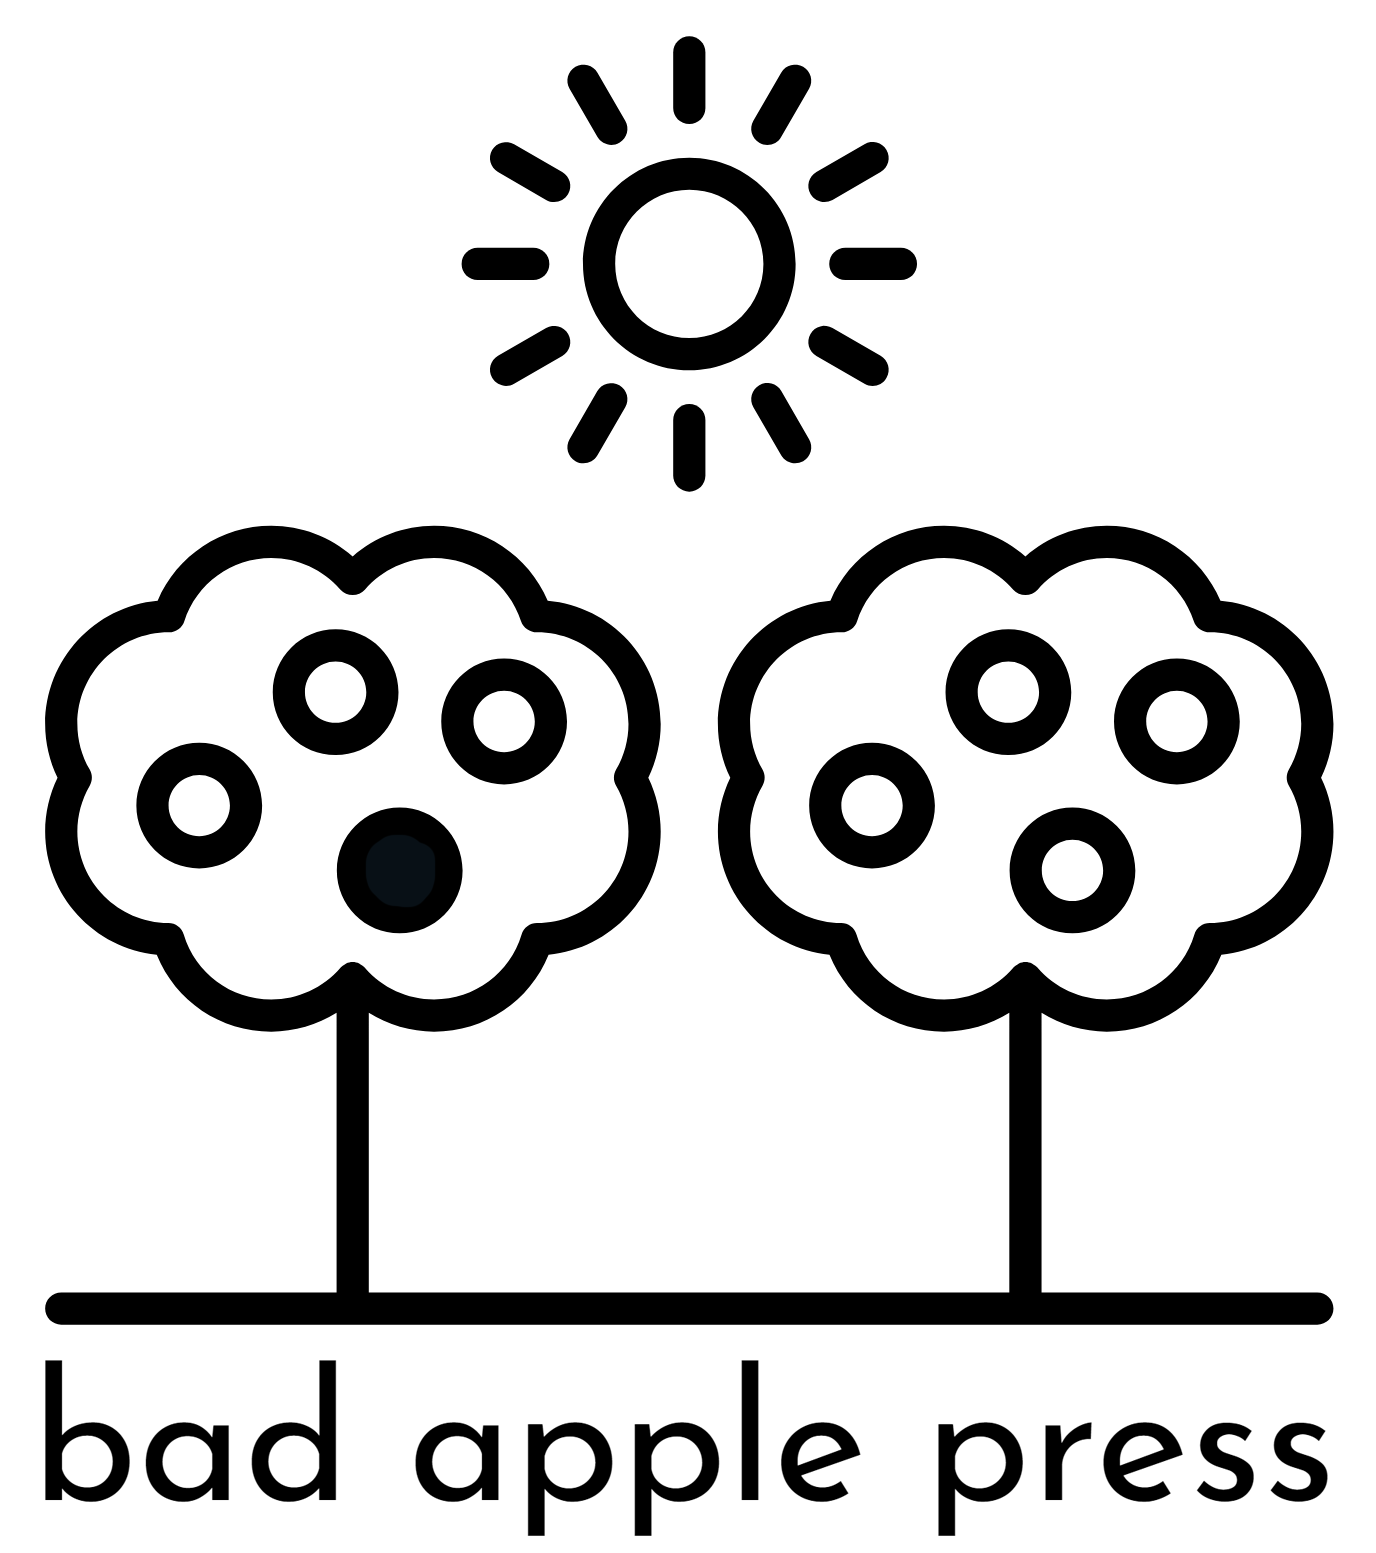 Bad Apple Press